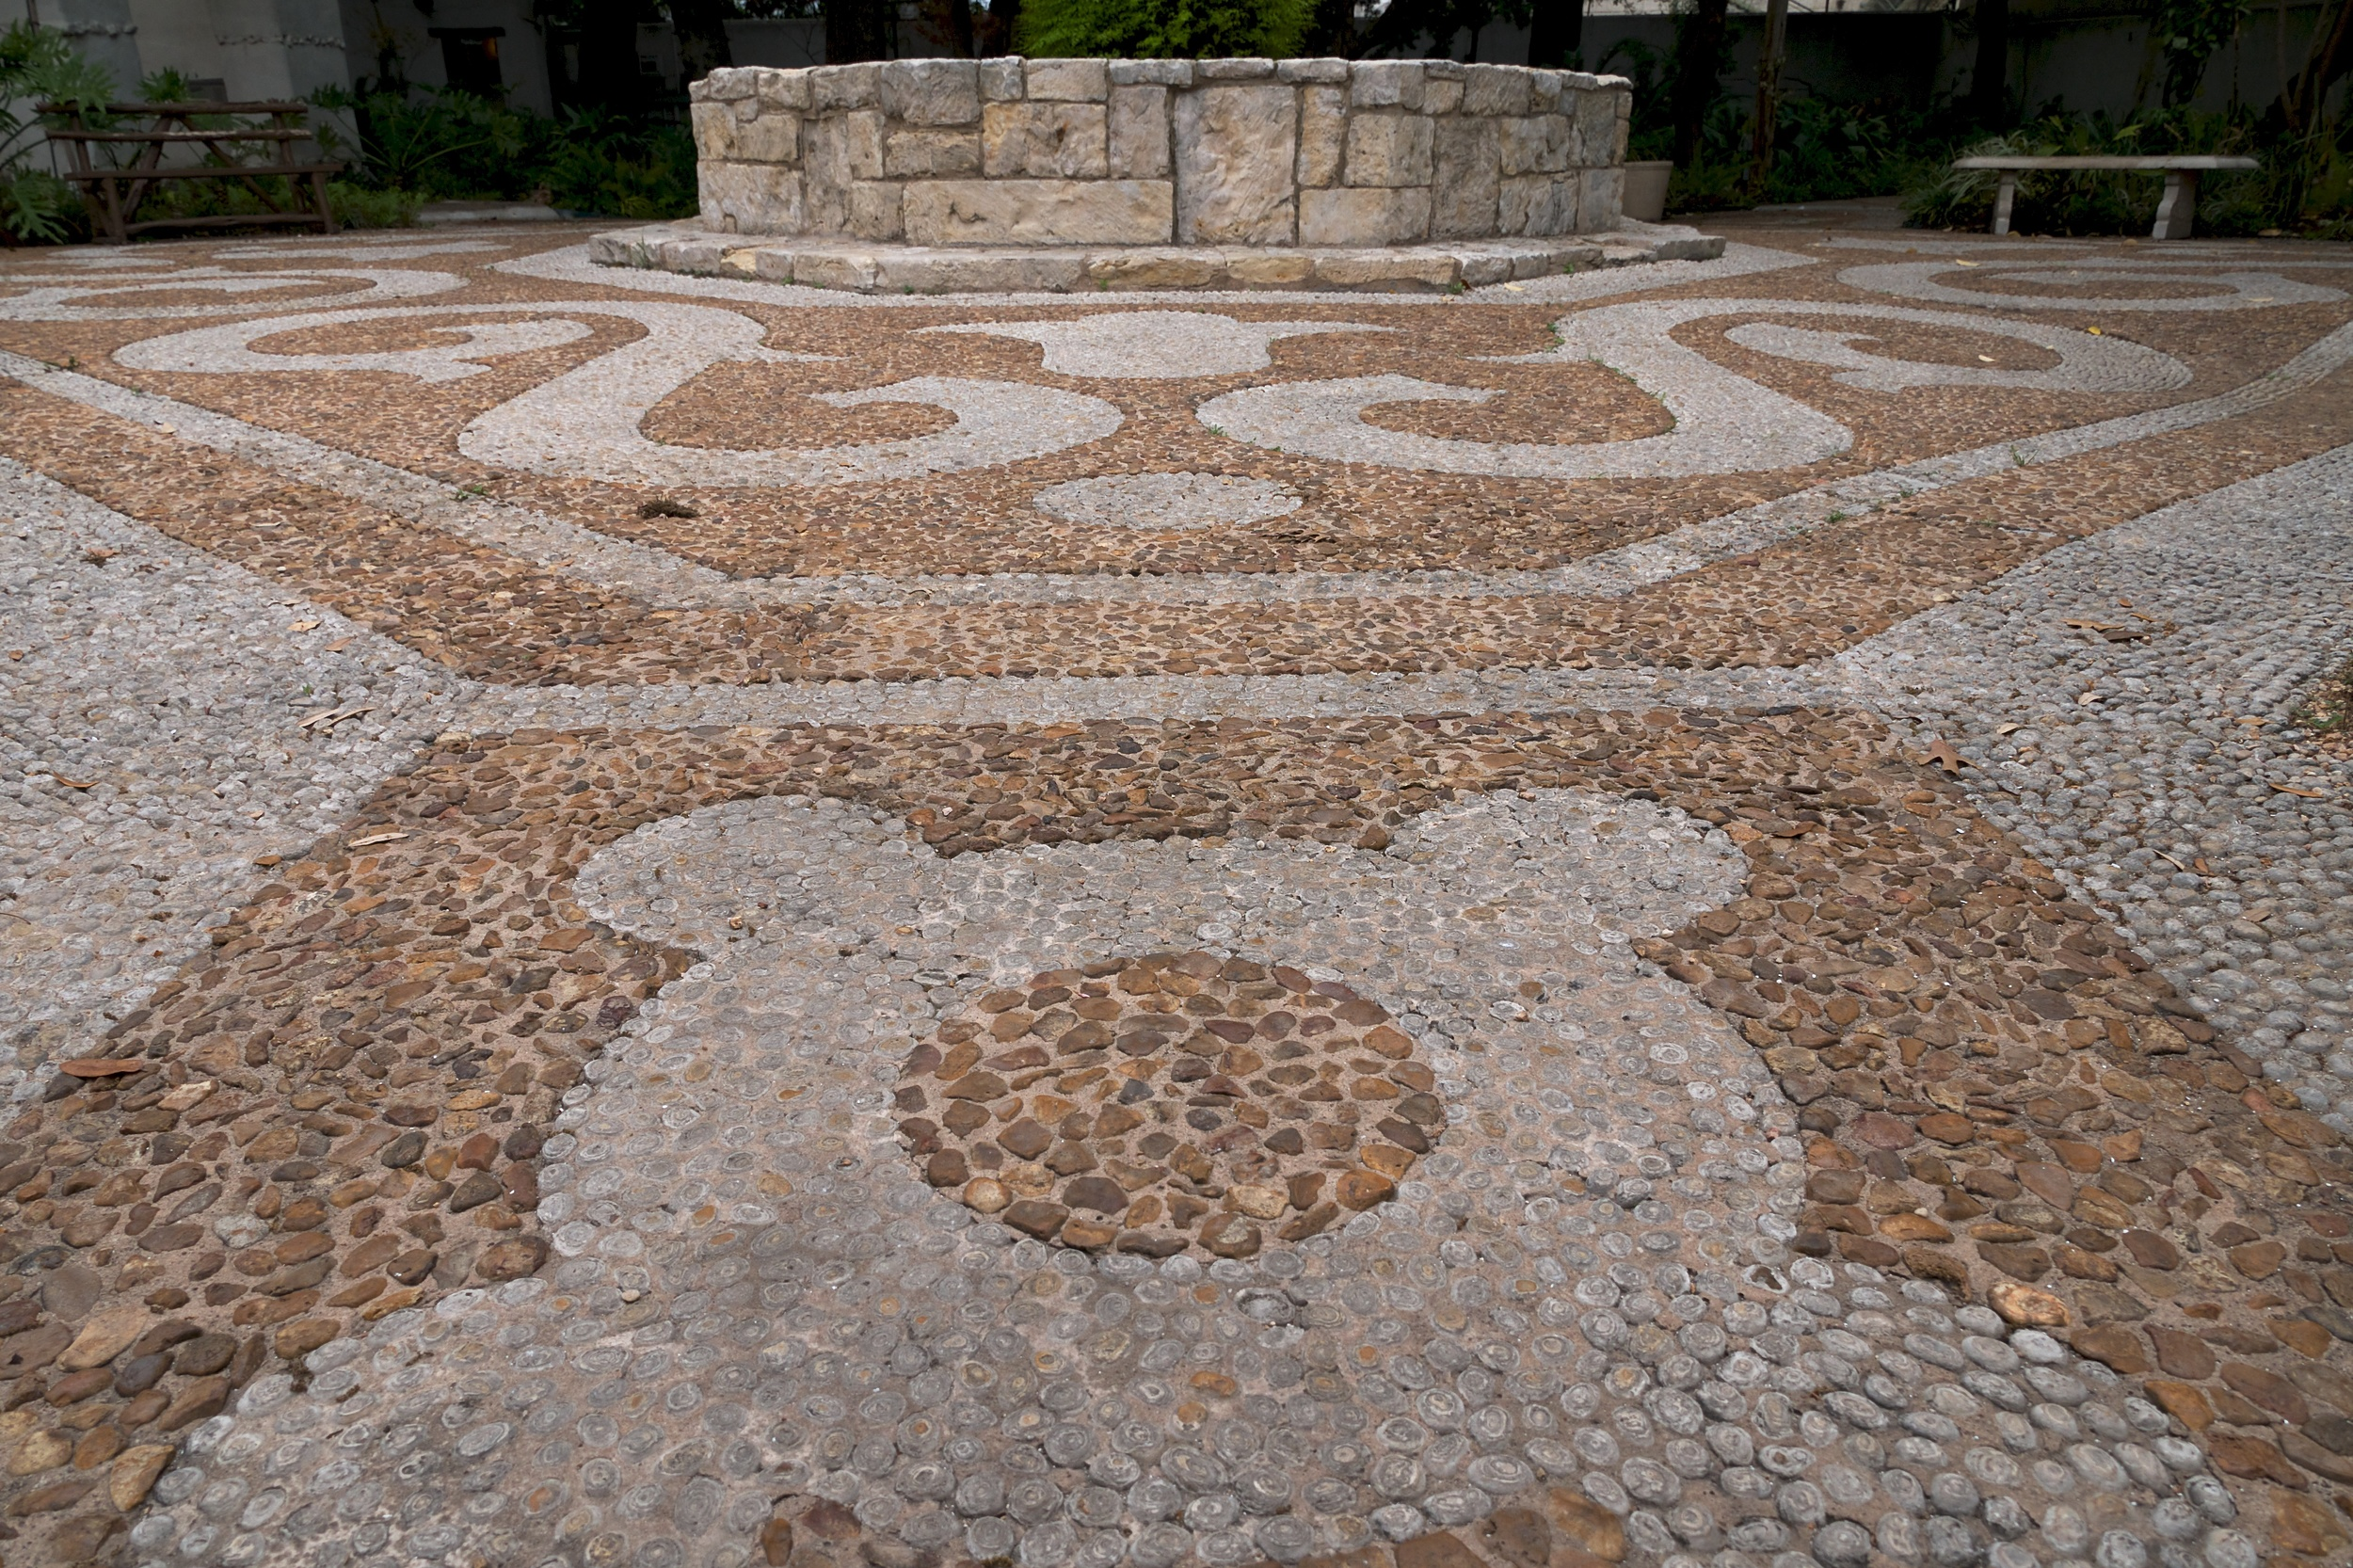 Back patio of the Spanish Governor's Palace